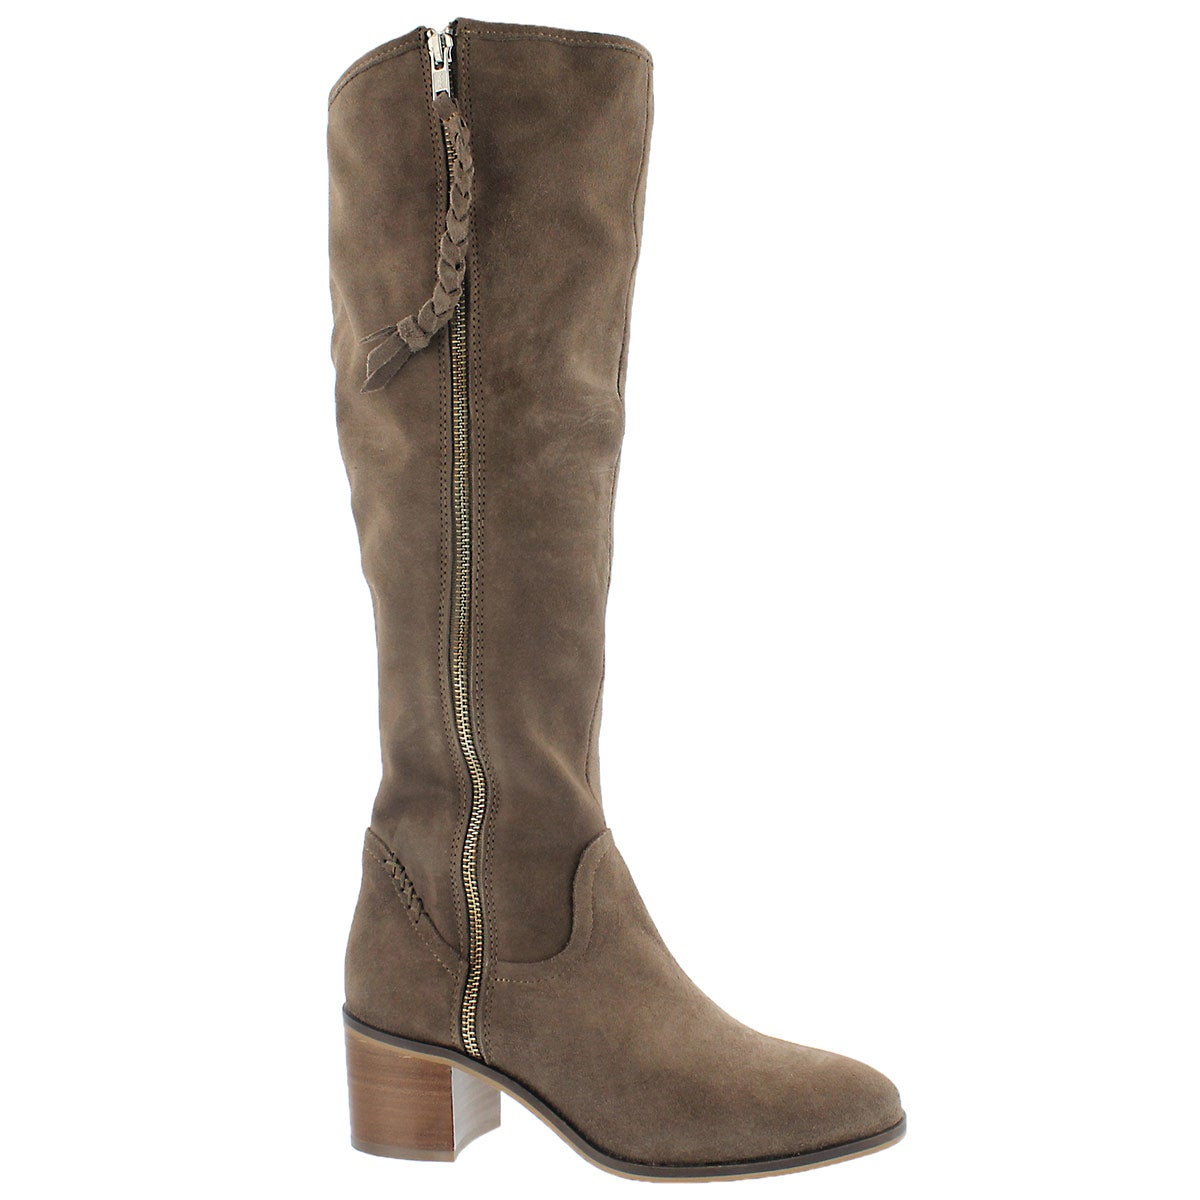 Lds Lasso taupe knee high dress boot